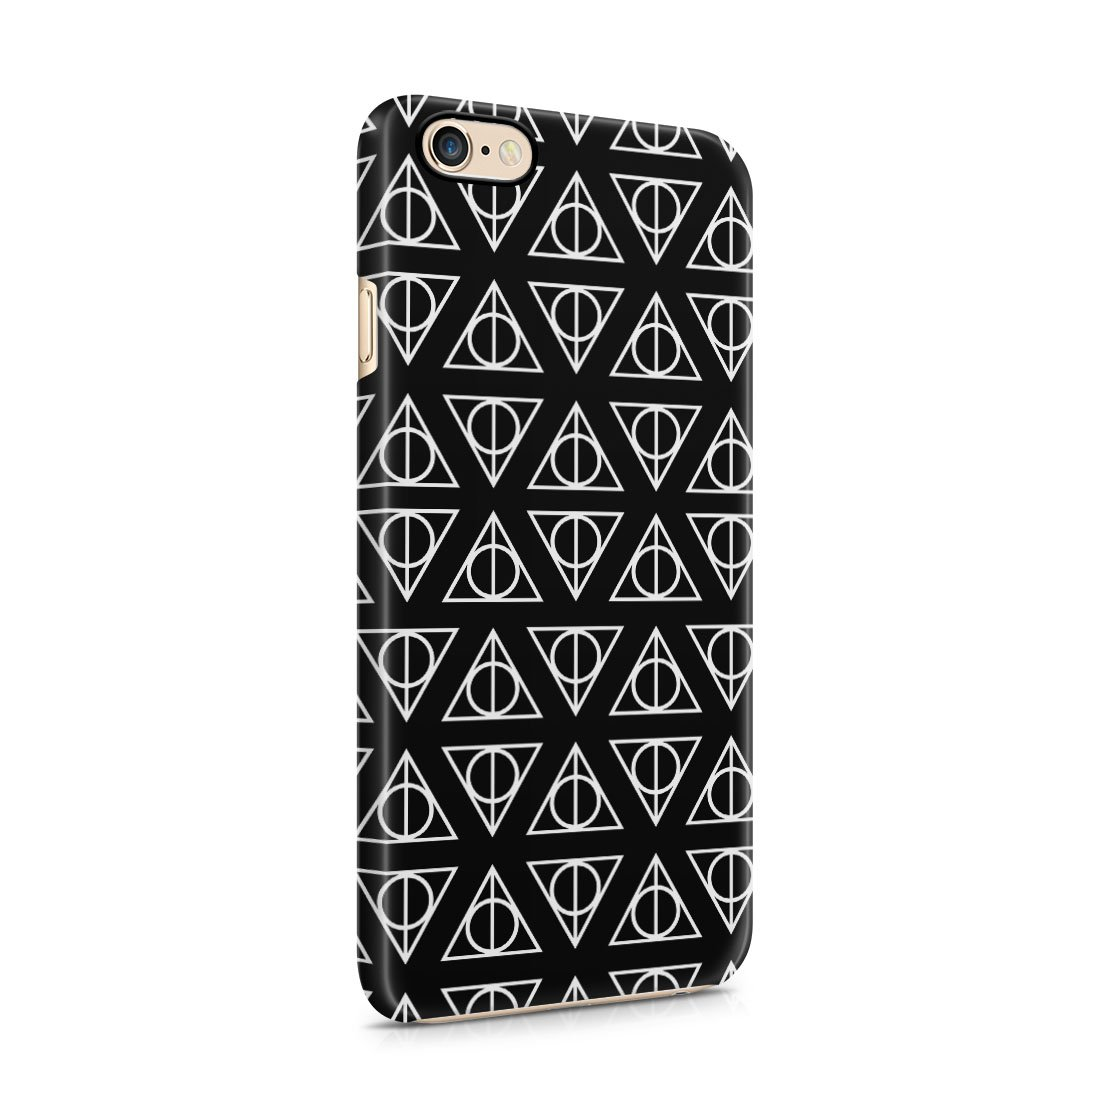 Harry Potter Deathly Hallows Pattern iPhone 6 / 6S Hard Plastic Phone Case Cover